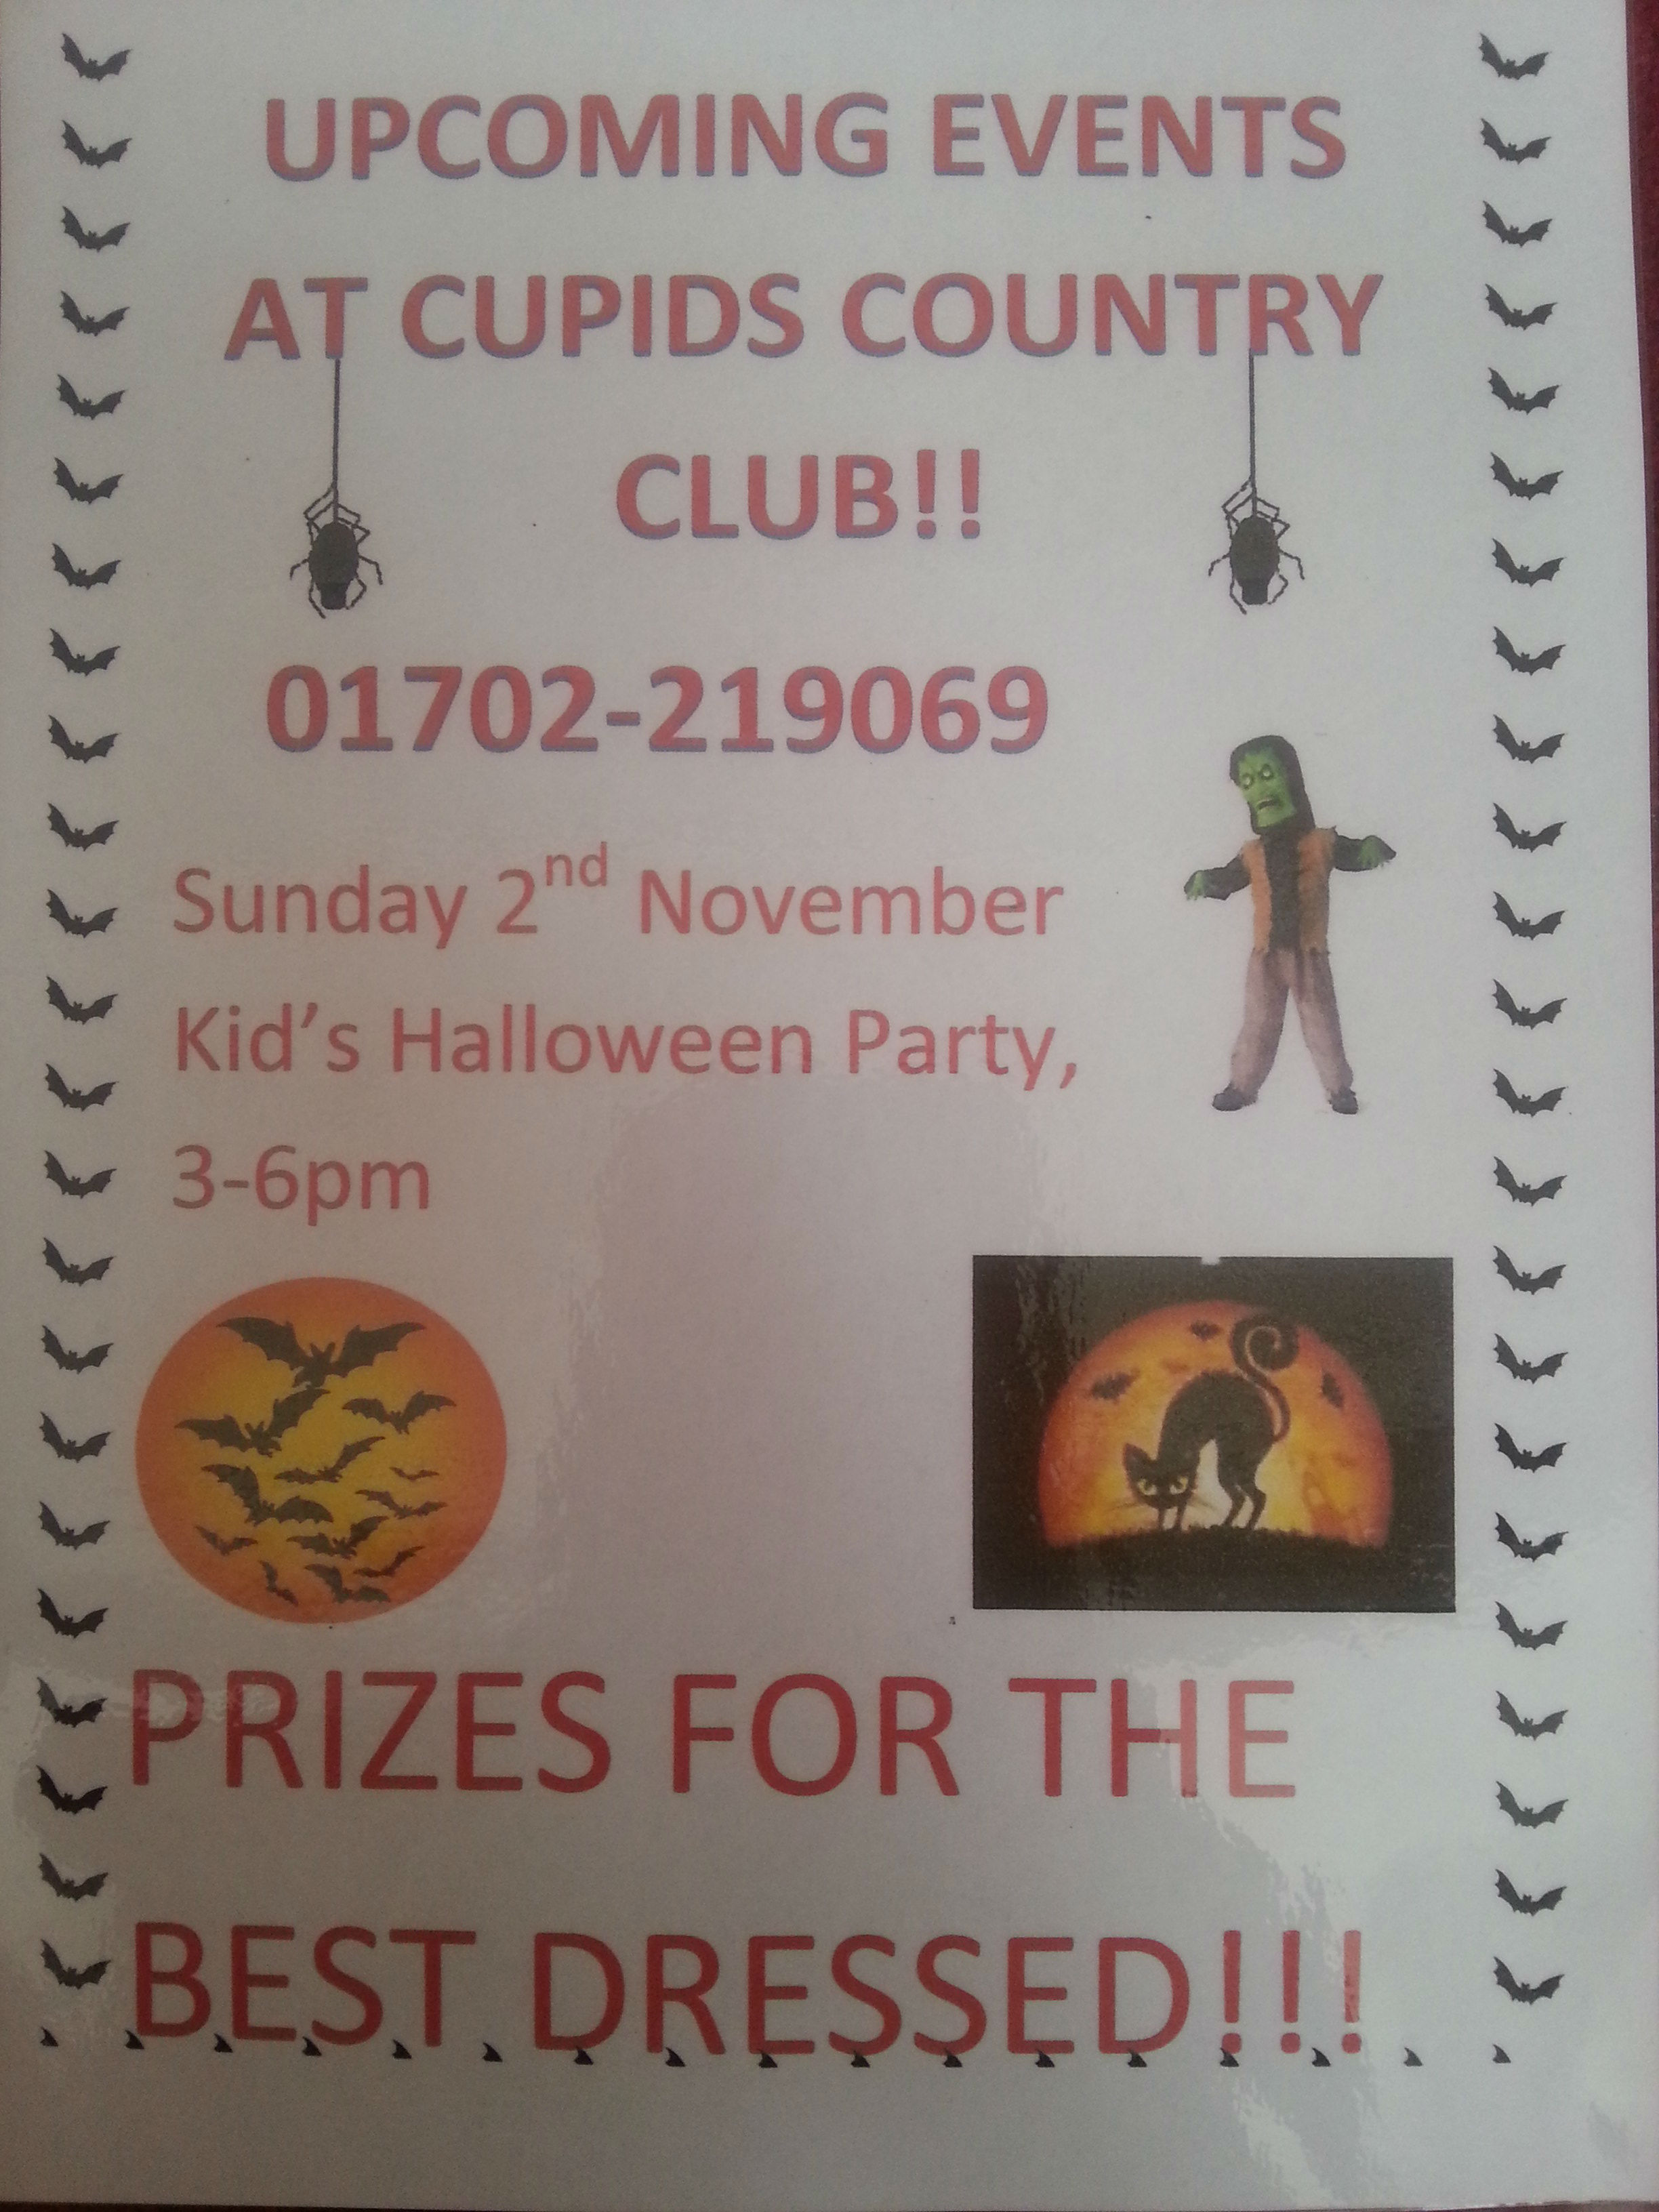 kids halloween party - love southend